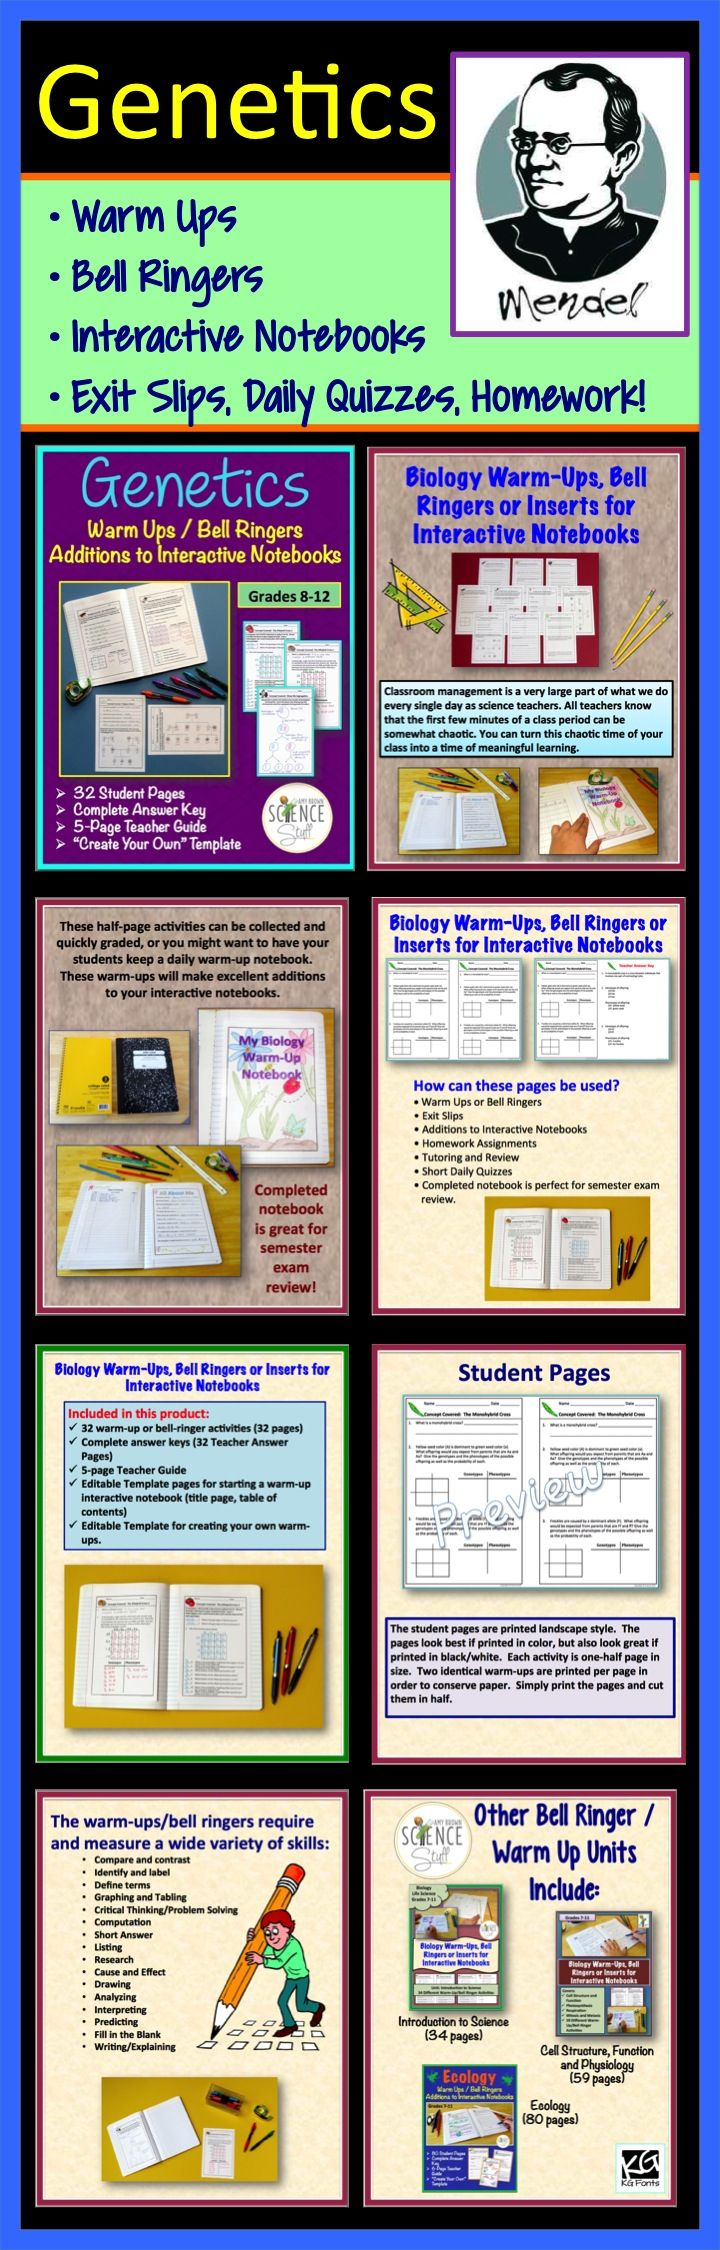 worksheet Genetics Basics Worksheet 1000 images about genetics lessons on pinterest videos student and squares